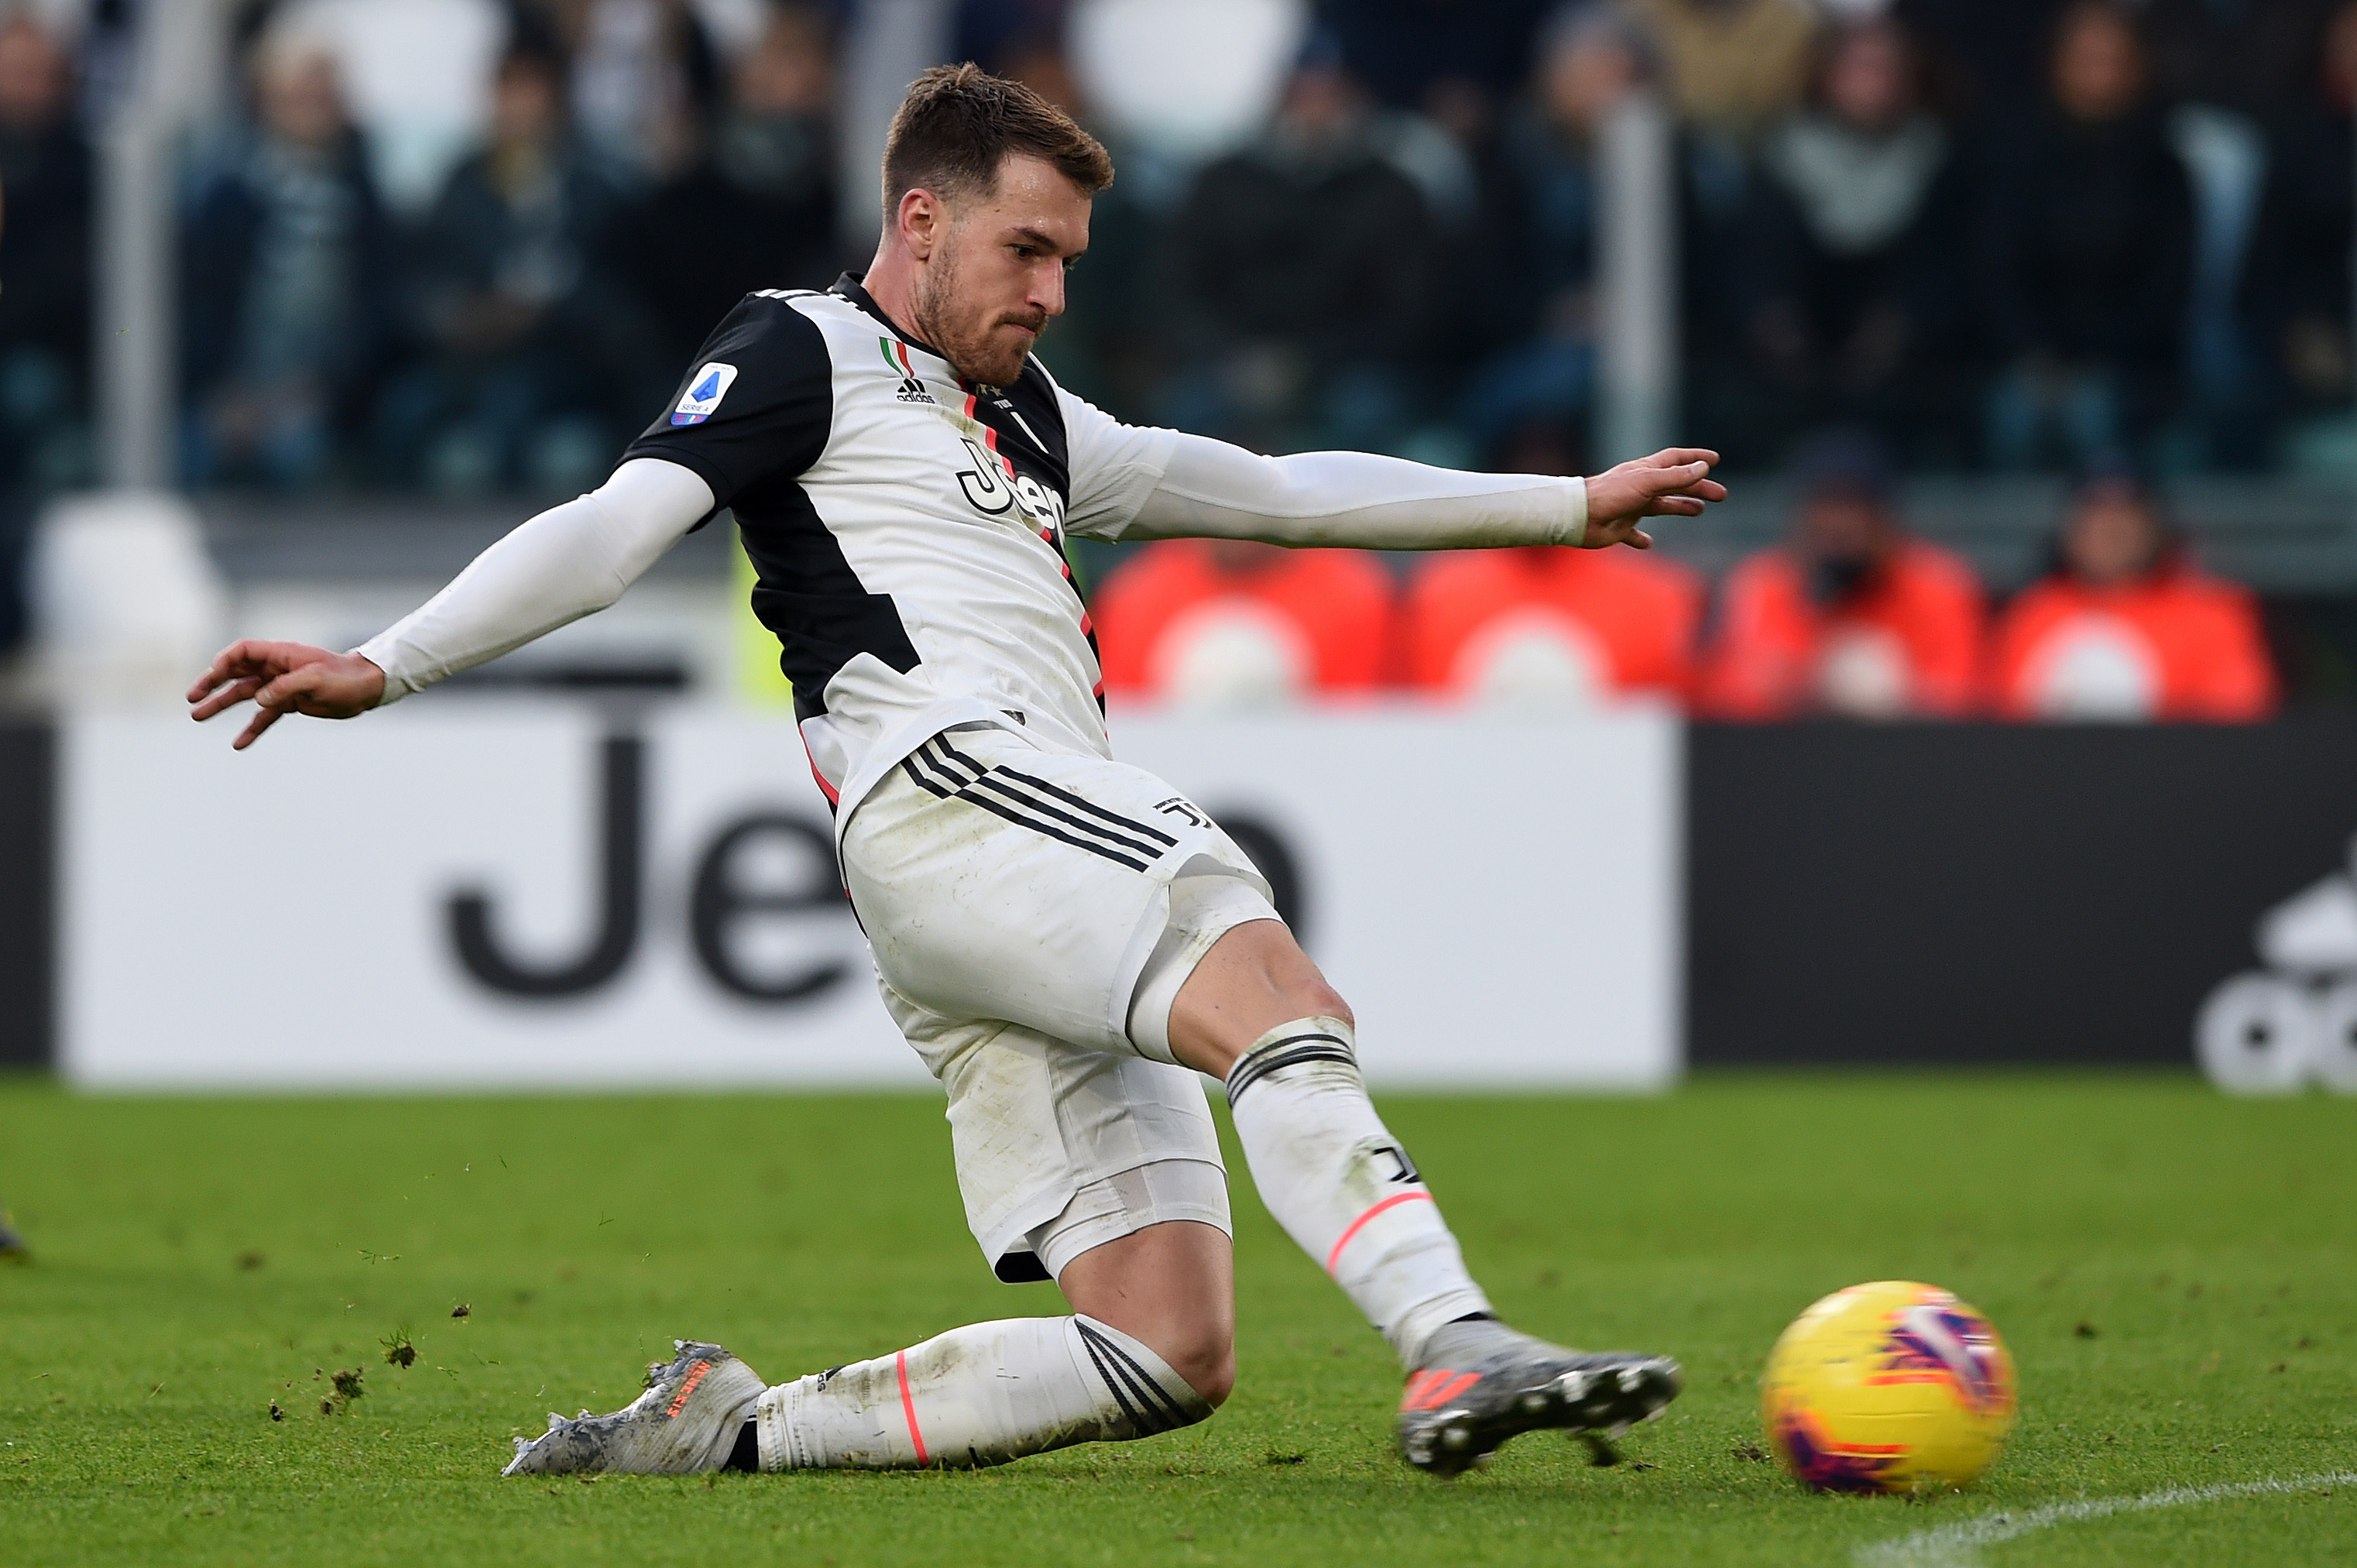 Aaron Ramsey Says Juventus Wanted Him 'At All Costs'; Compares Serie A, EPL  | Bleacher Report | Latest News, Videos and Highlights